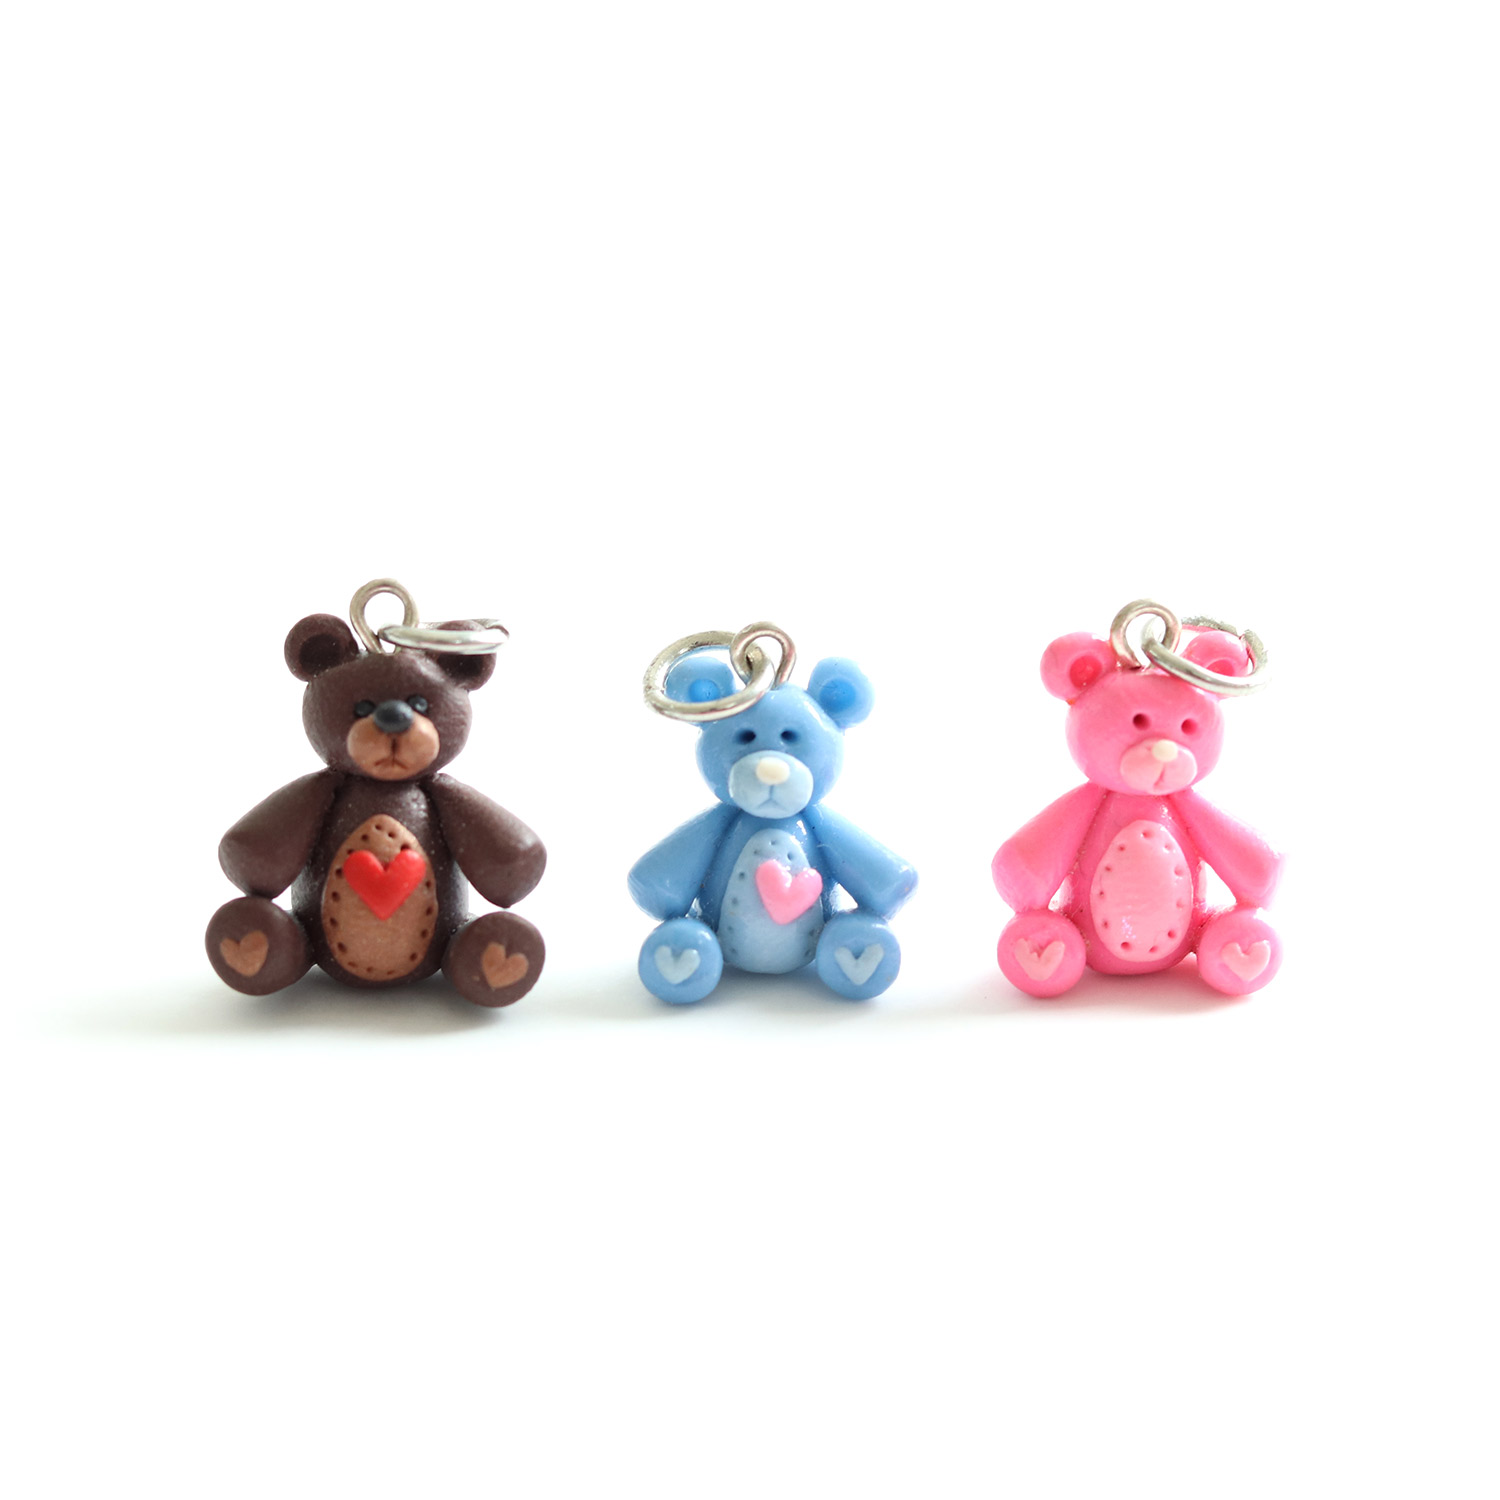 Teddy Charm/Necklace